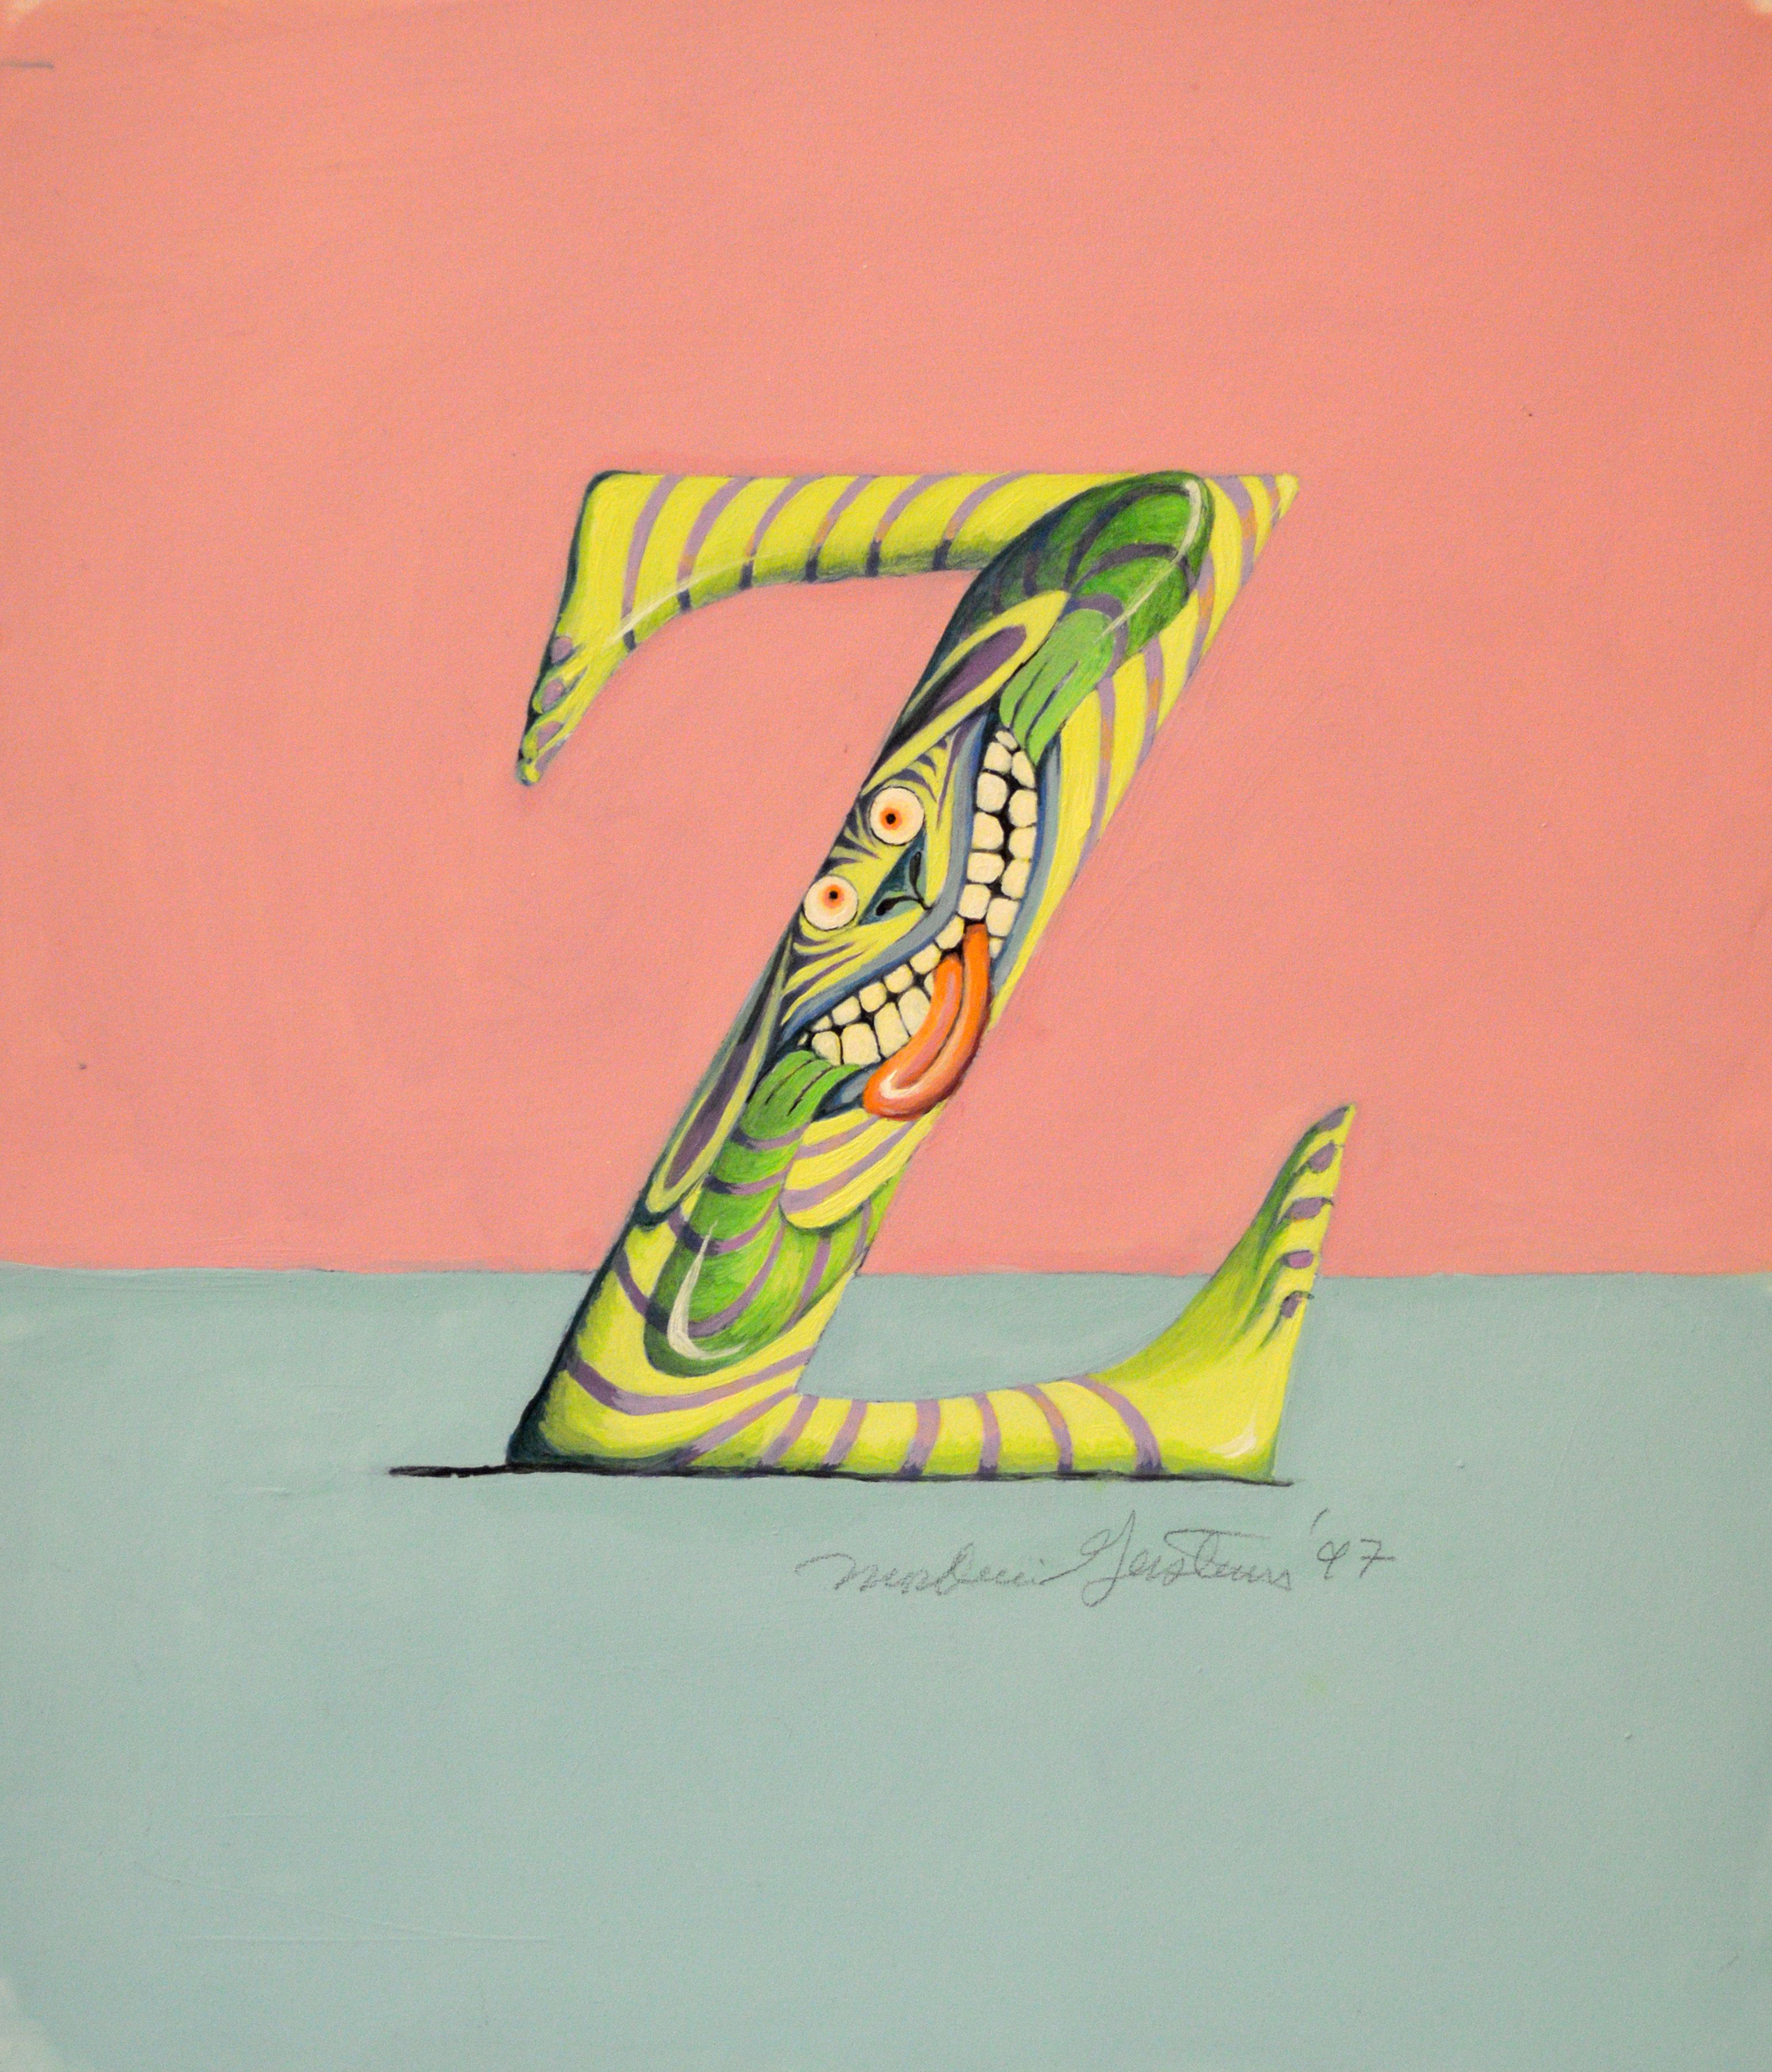 """Letter Z"" original illustration from The Absolutely Awful Alphabet written and illustrated by Mordicai Gerstein 